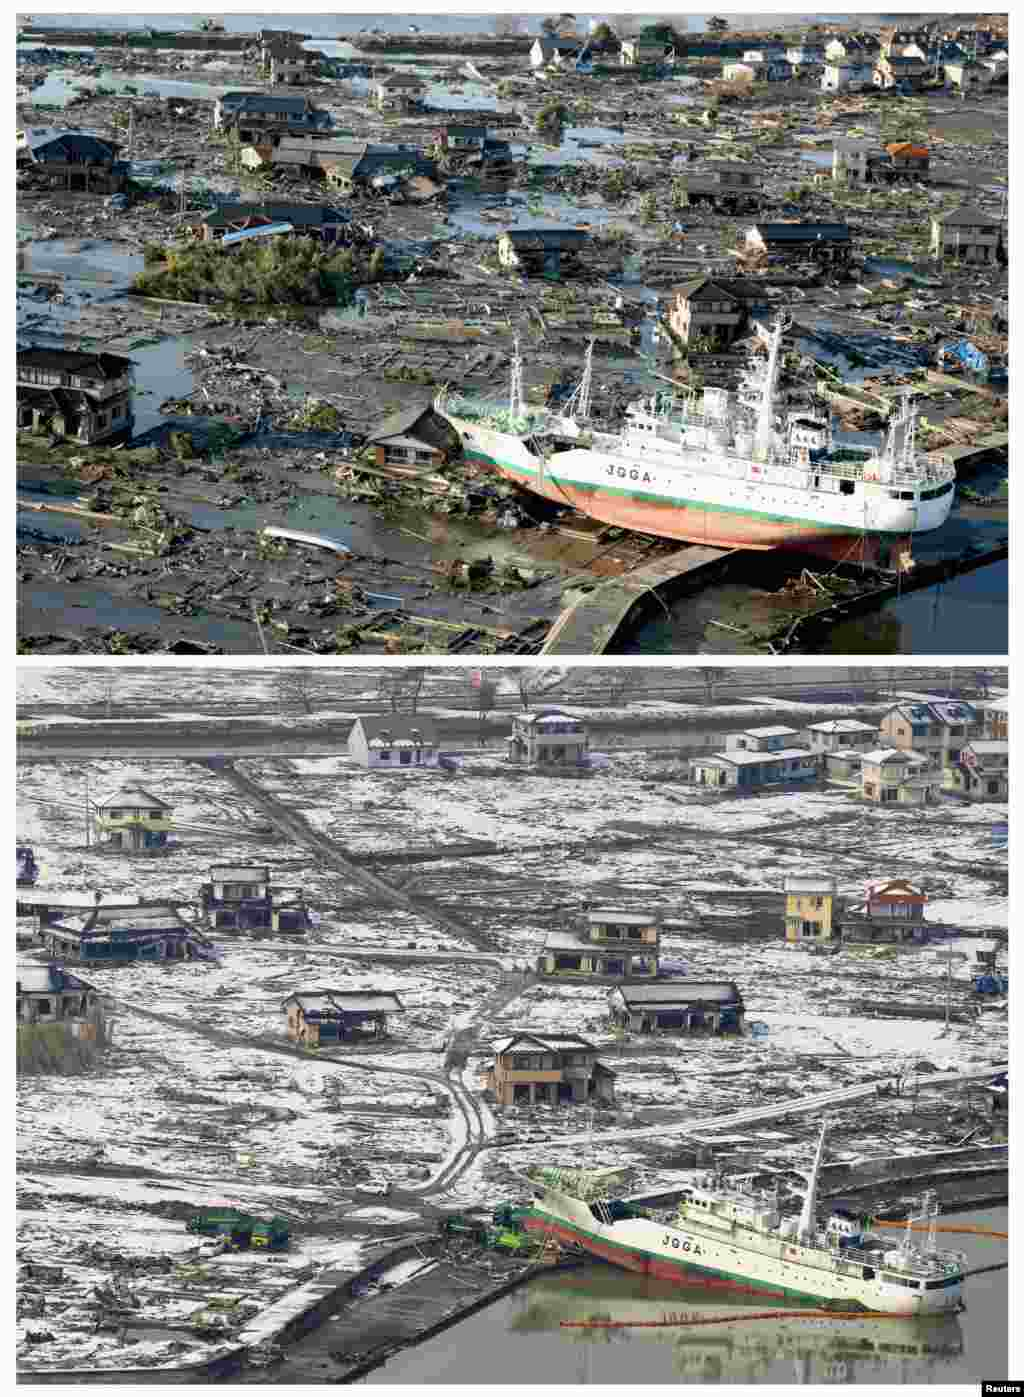 On top, the tsunami-devastated city of Higashimatsushima in Miyagi Prefecture on March 12, 2011, and below, on March 3, 2012